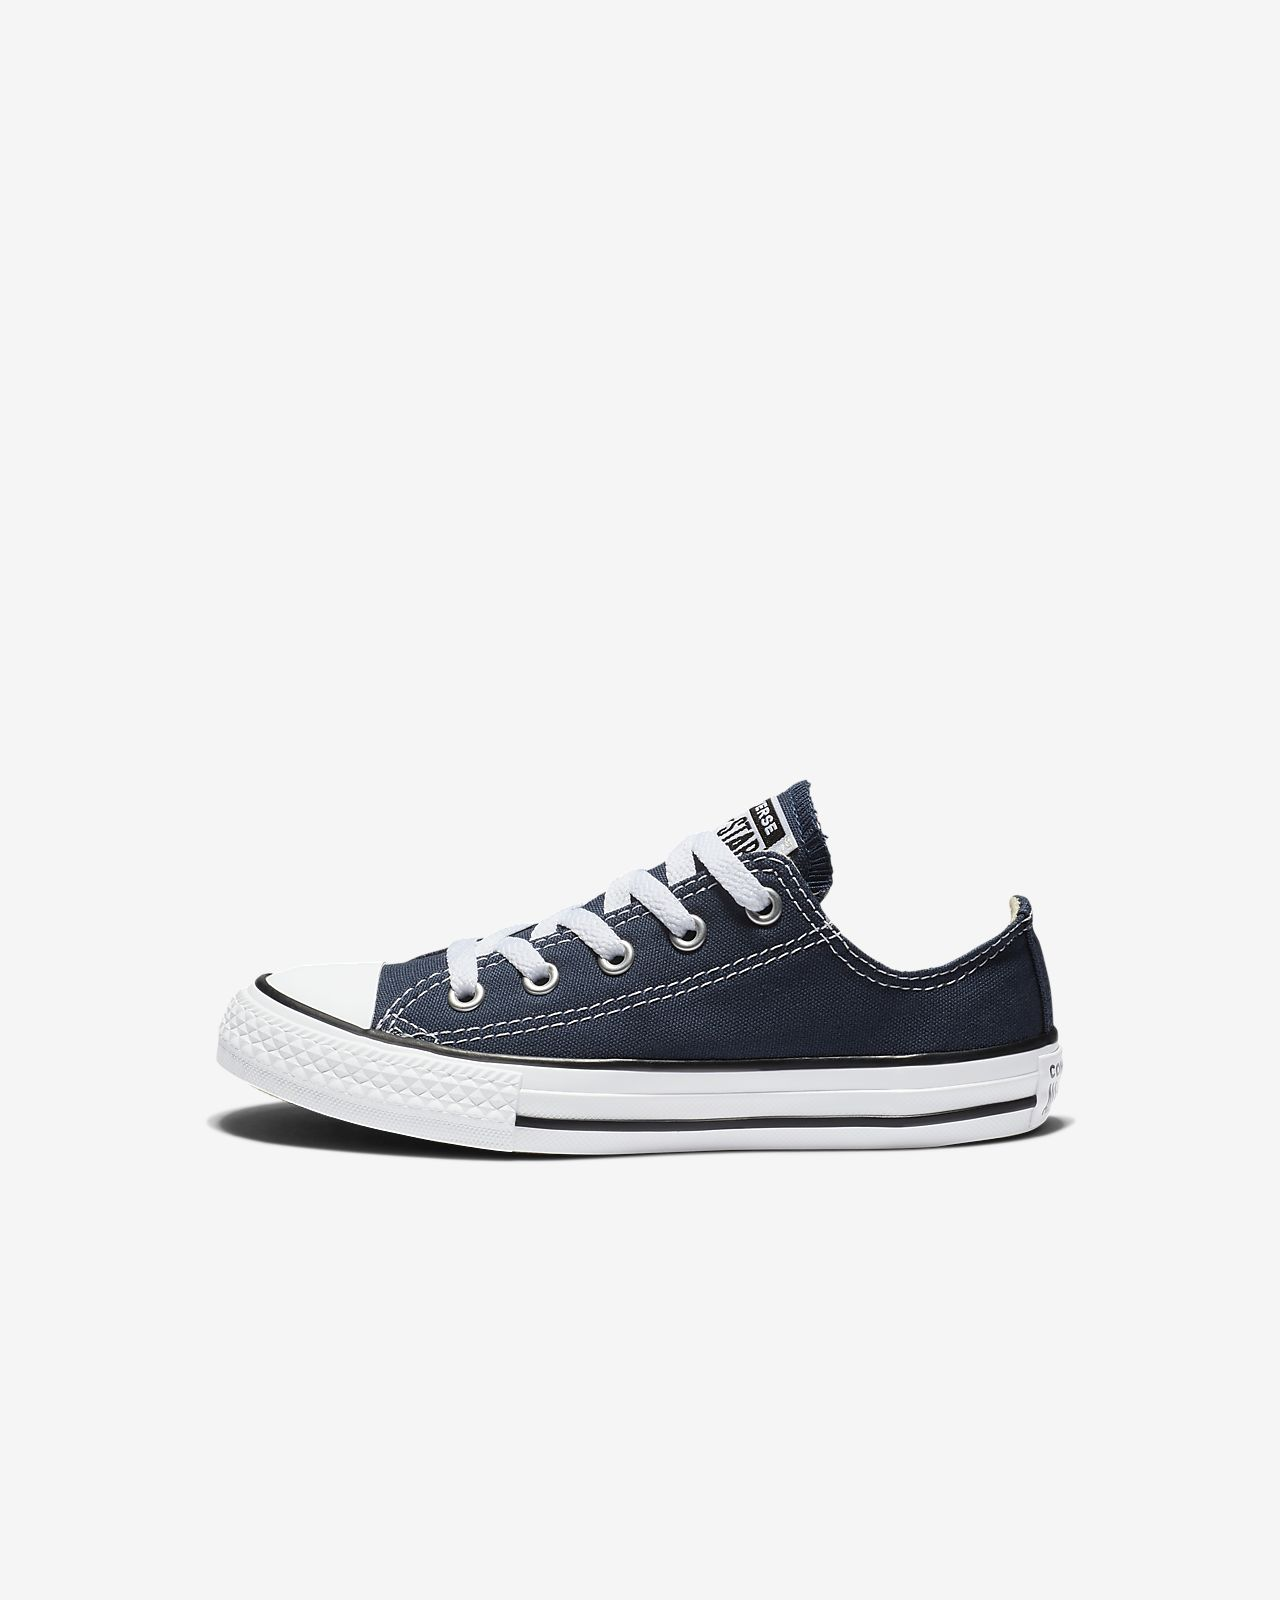 4a605df6ea5 Converse Chuck Taylor All Star Low Top (10.5c-3y) Little Kids  Shoe ...